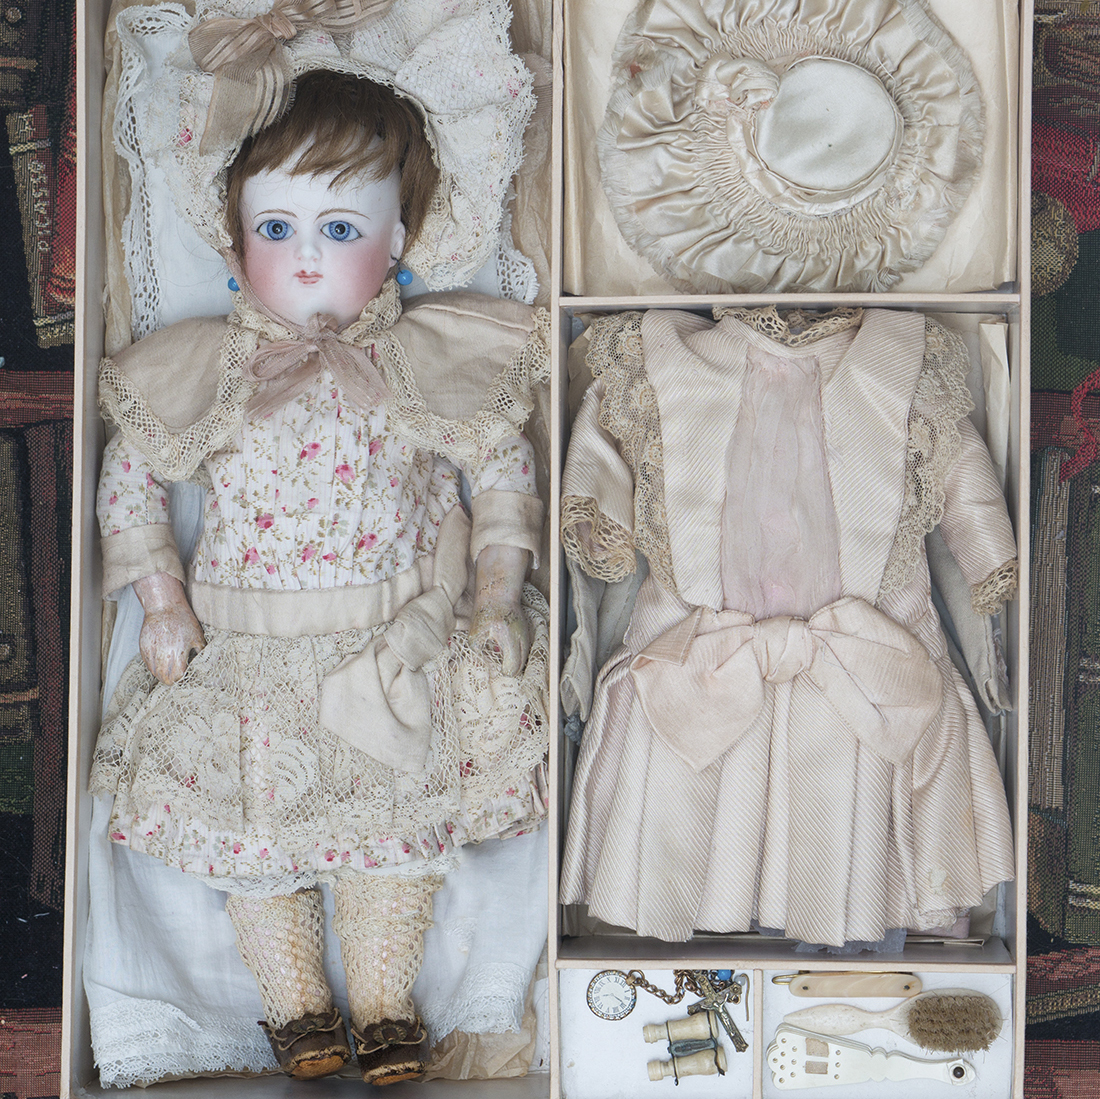 Schmitt doll in presentation box